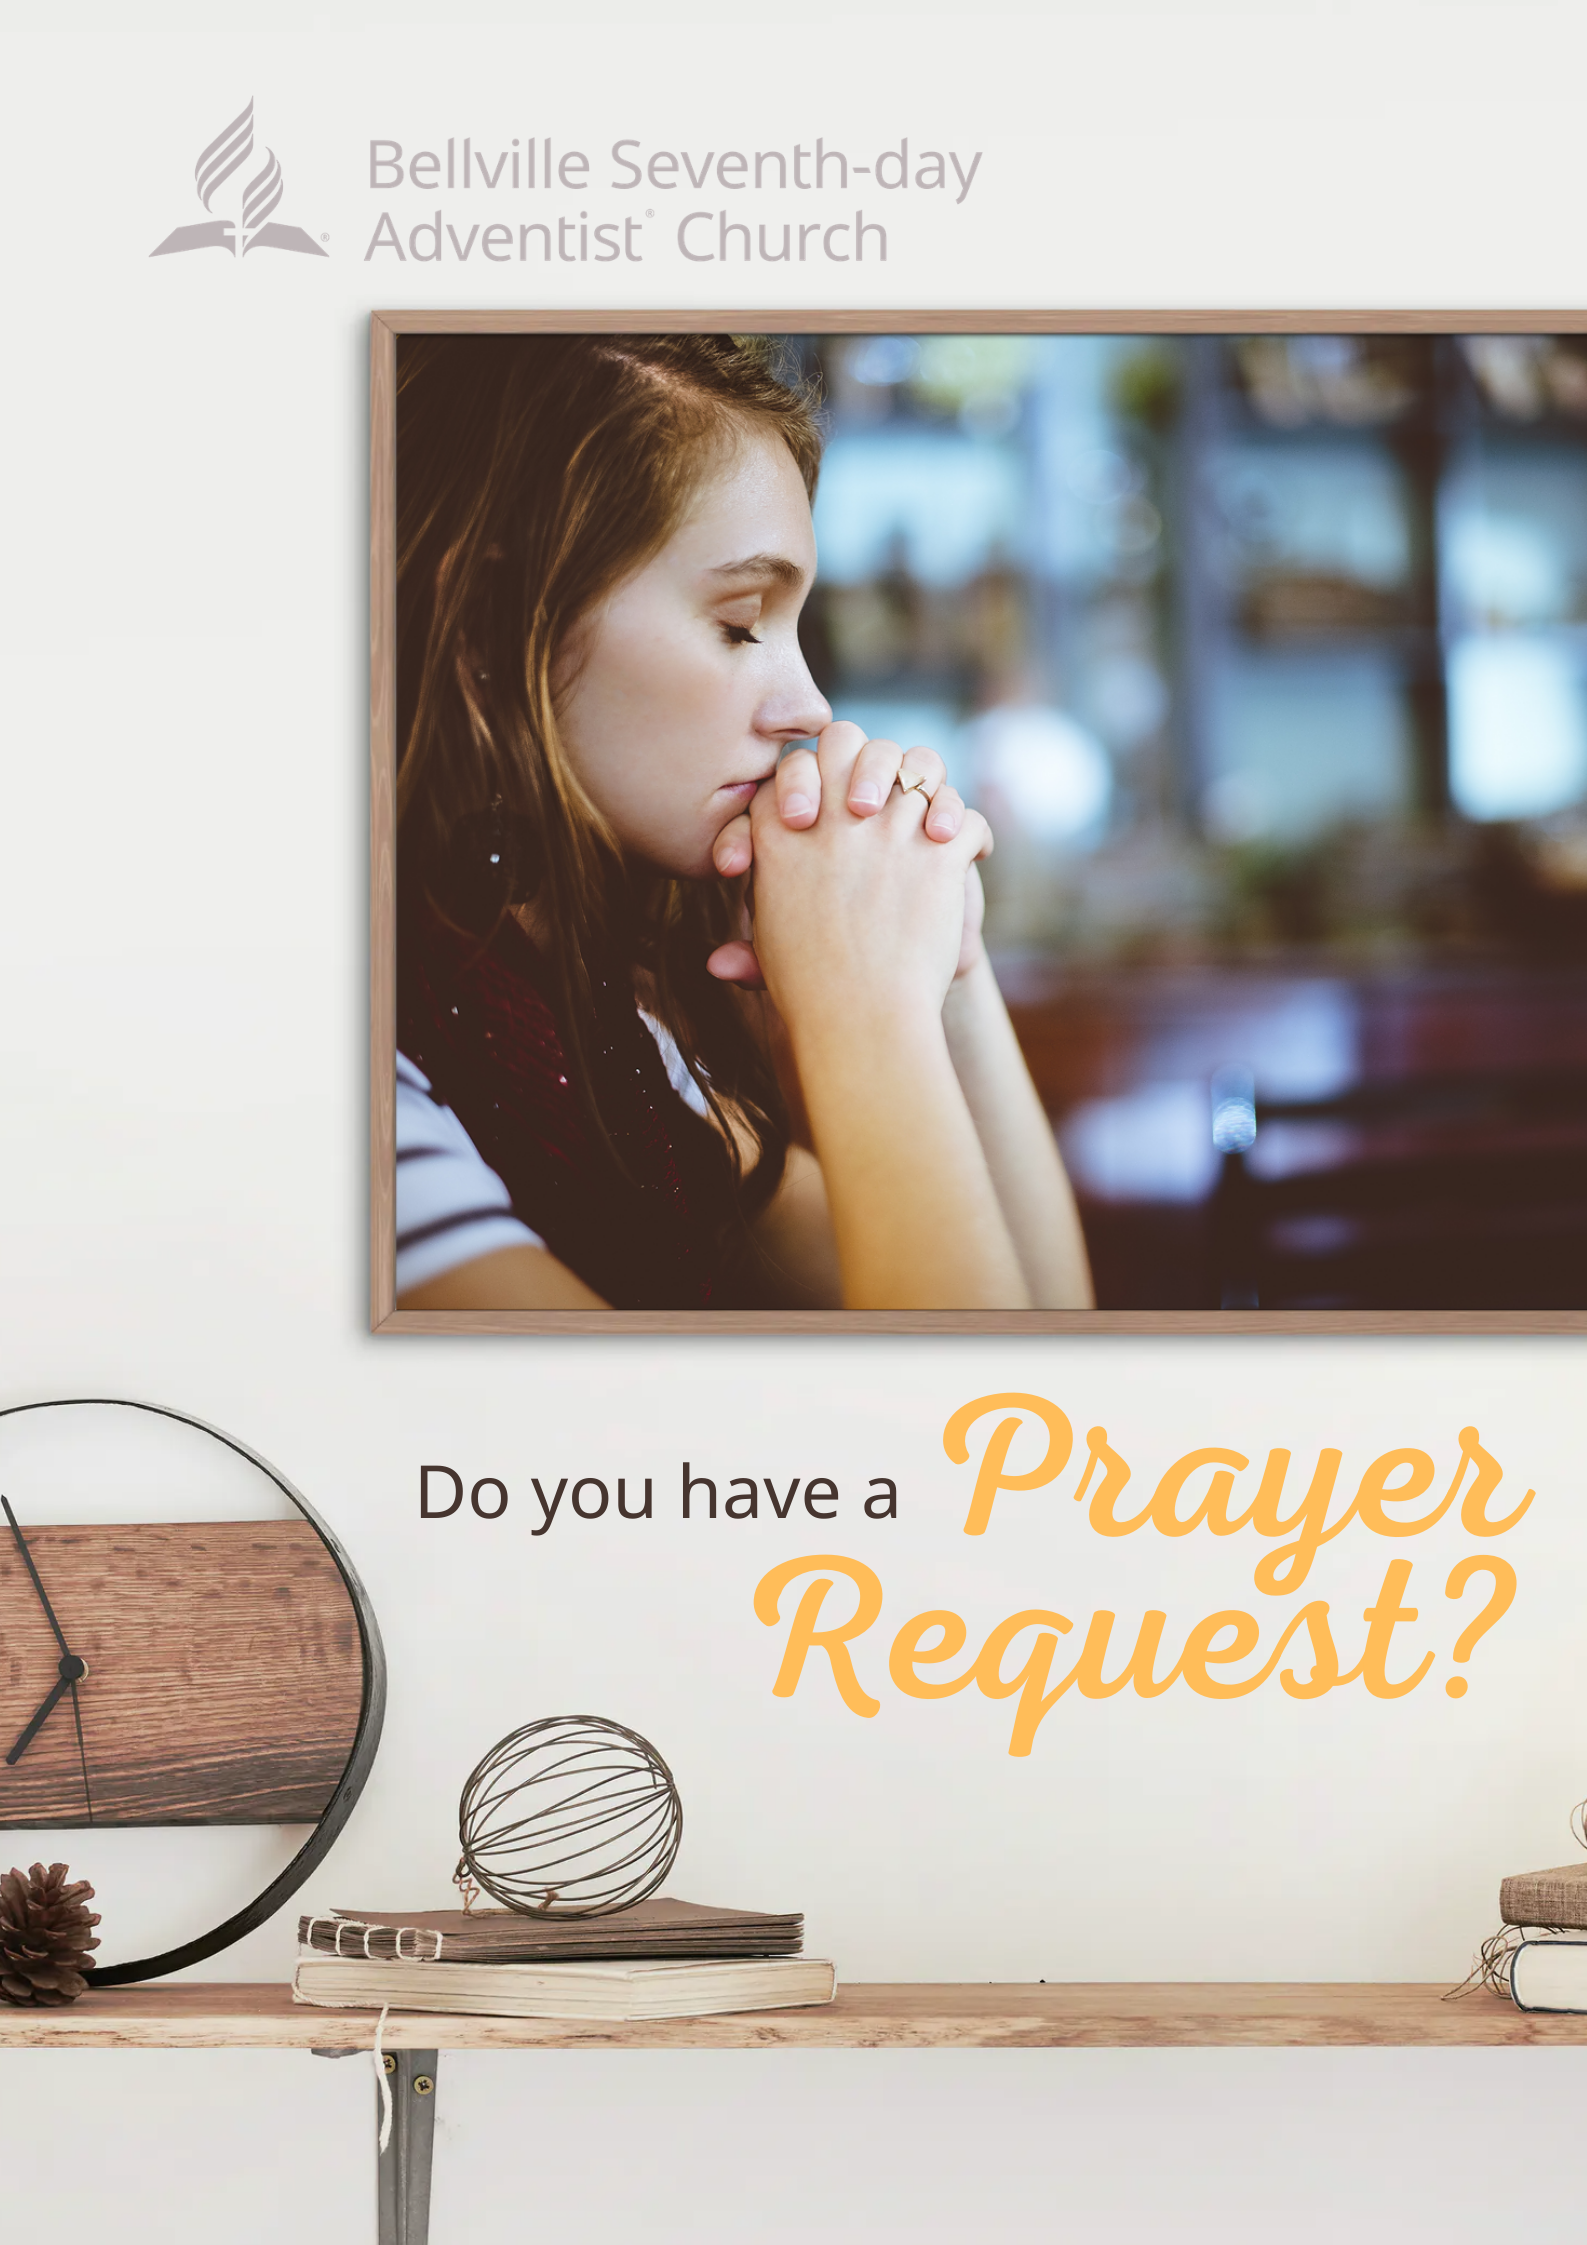 Submit your prayer request here